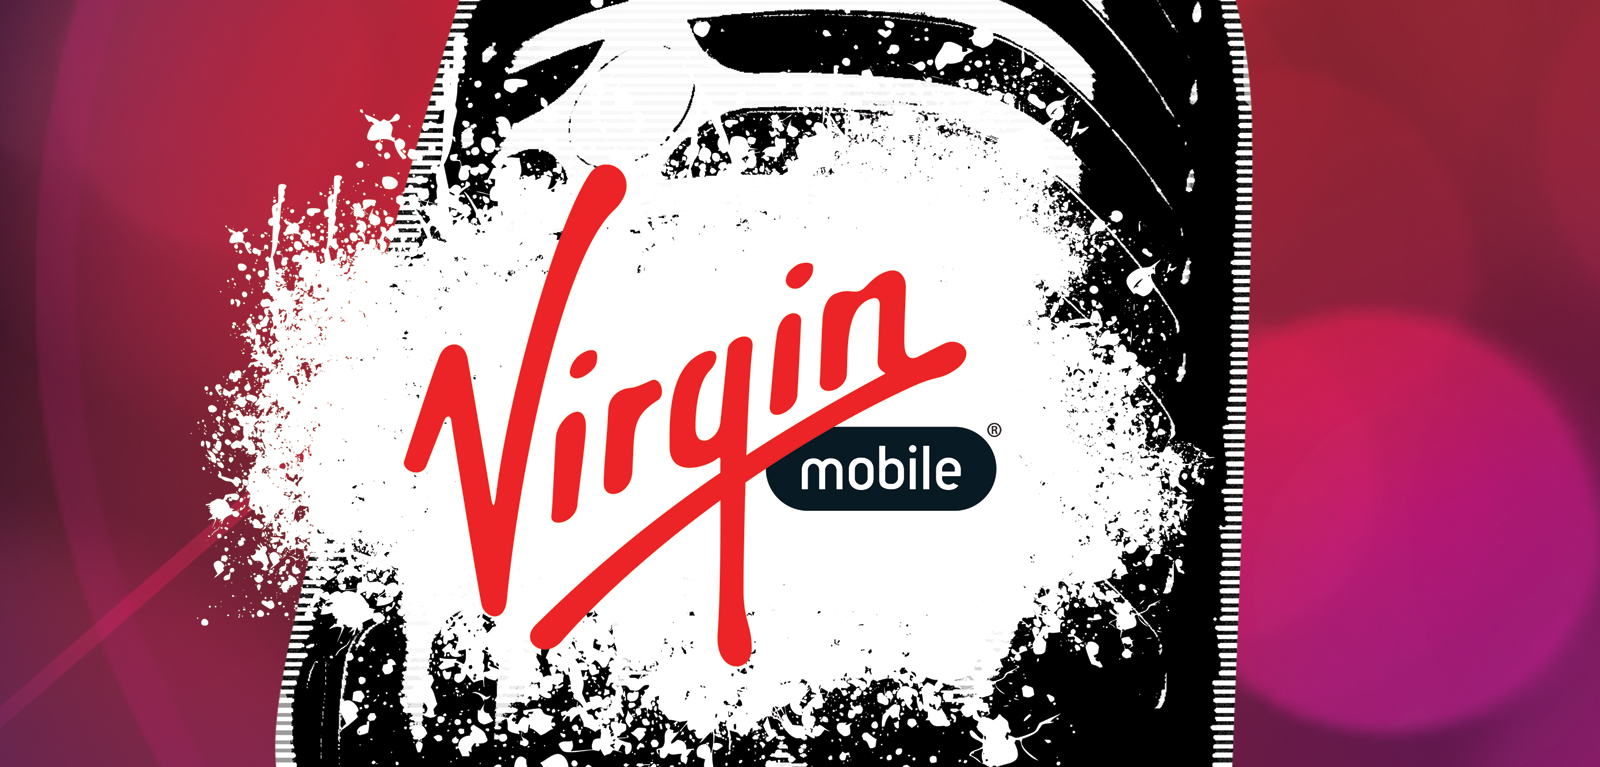 Virgin mobile us news in photos claudias images biocorpaavc Image collections